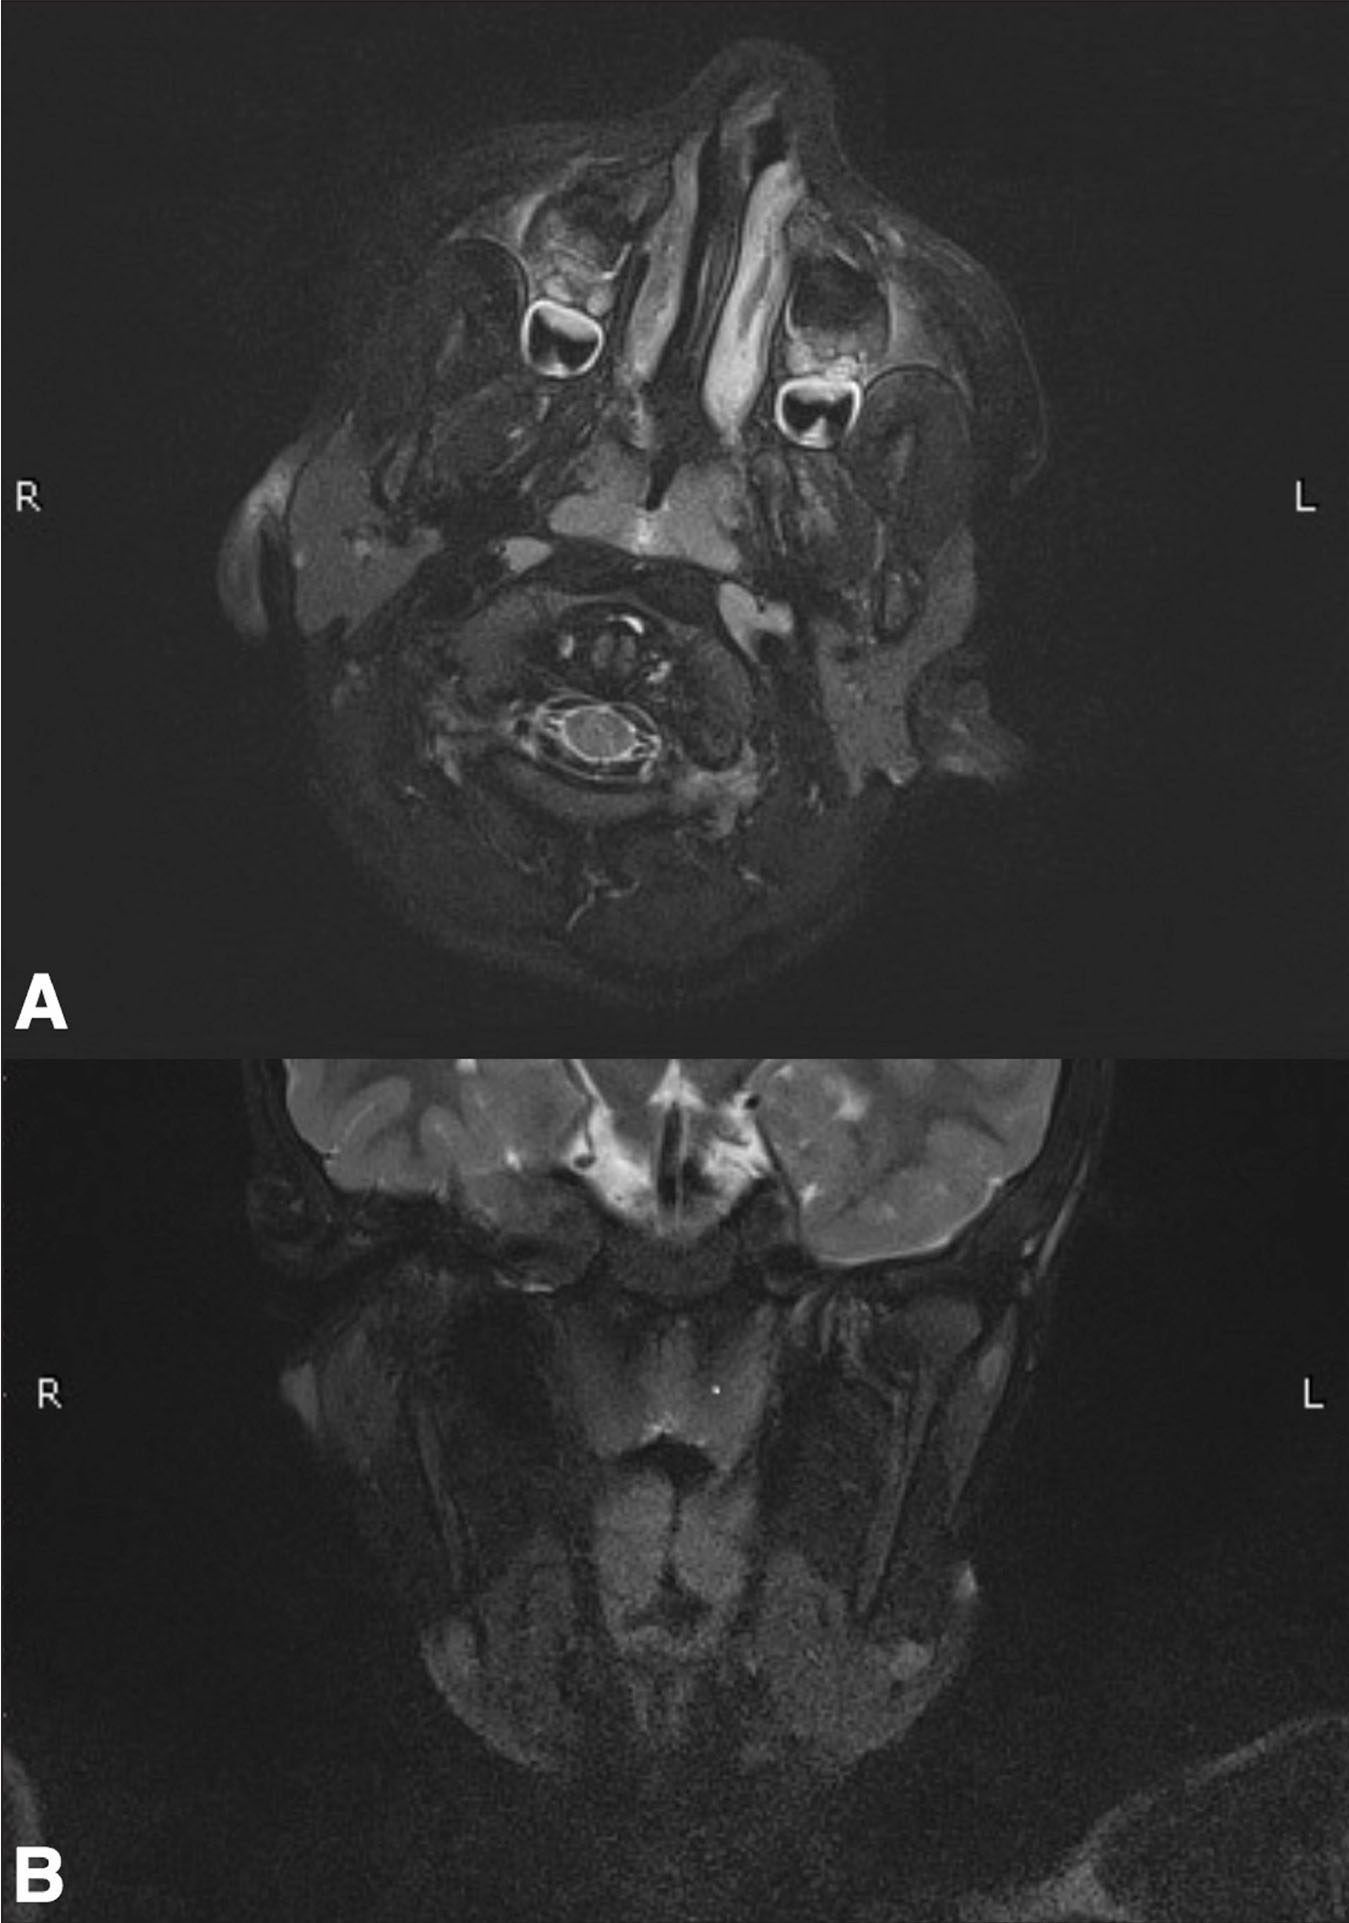 (A) Axial and (B) coronal T2 fat-suppressed sequences at the upper neck show normal architecture of both (A) parotid and (B) sub-mandibuler glands.